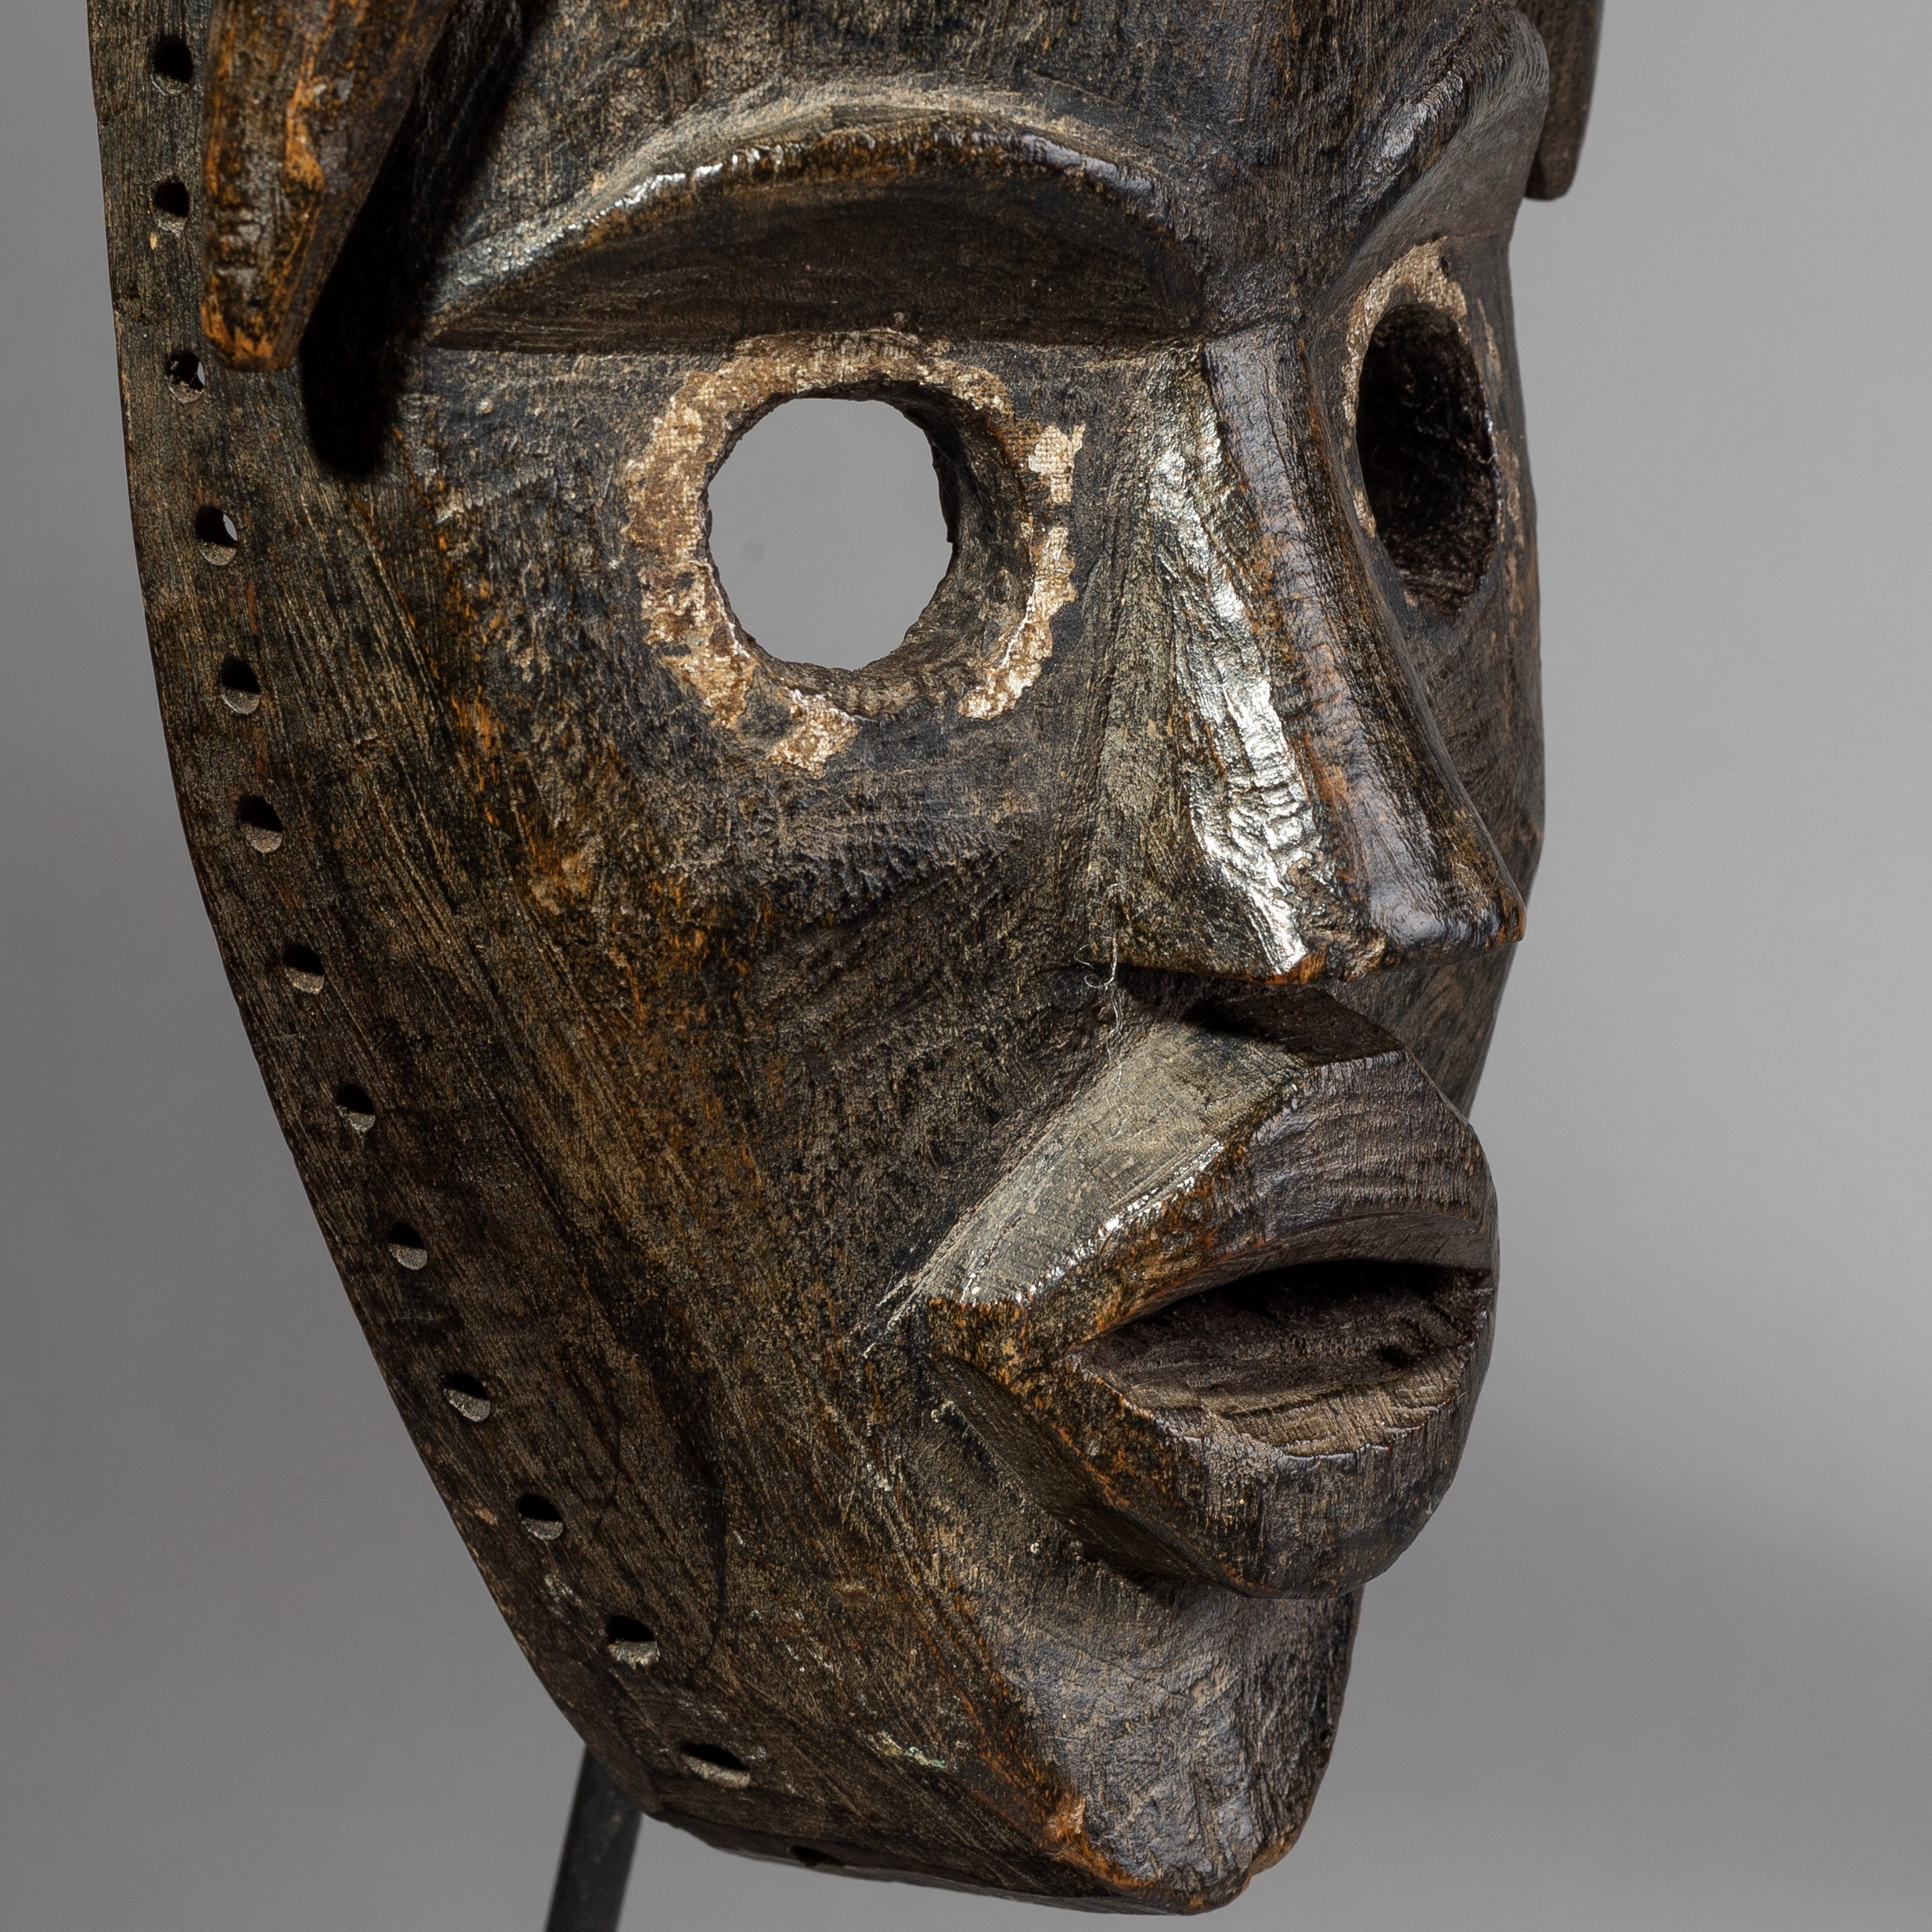 SD AN IMPOSING  DAN MASK FROM THE IVORY COAST ( No 1689 )